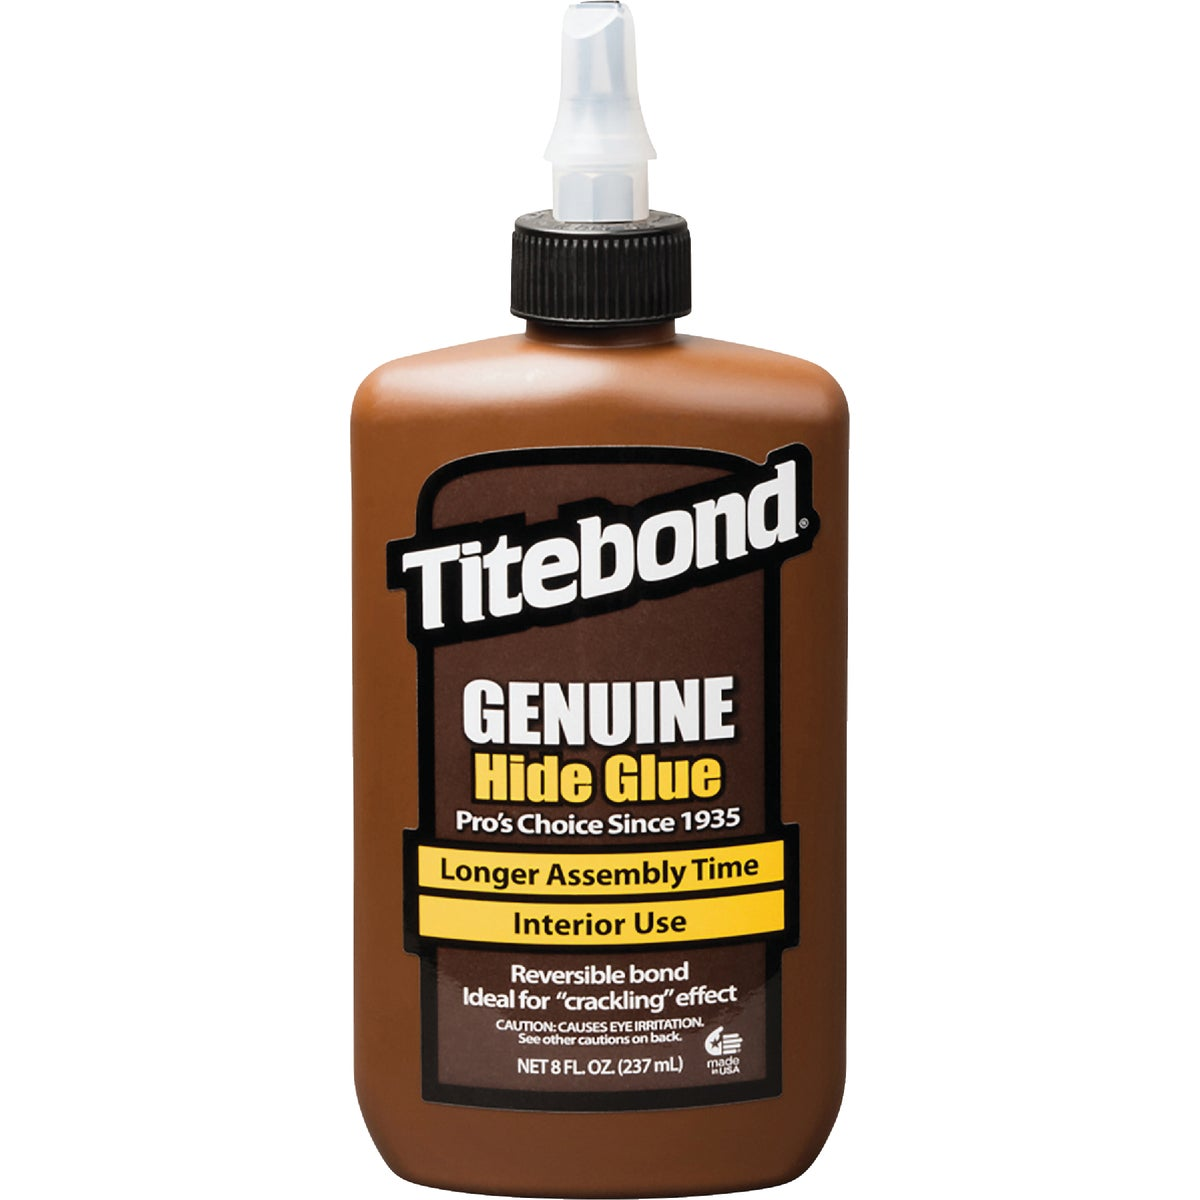 8OZ LIQUID HIDE GLUE - 5013 by Franklin Interl